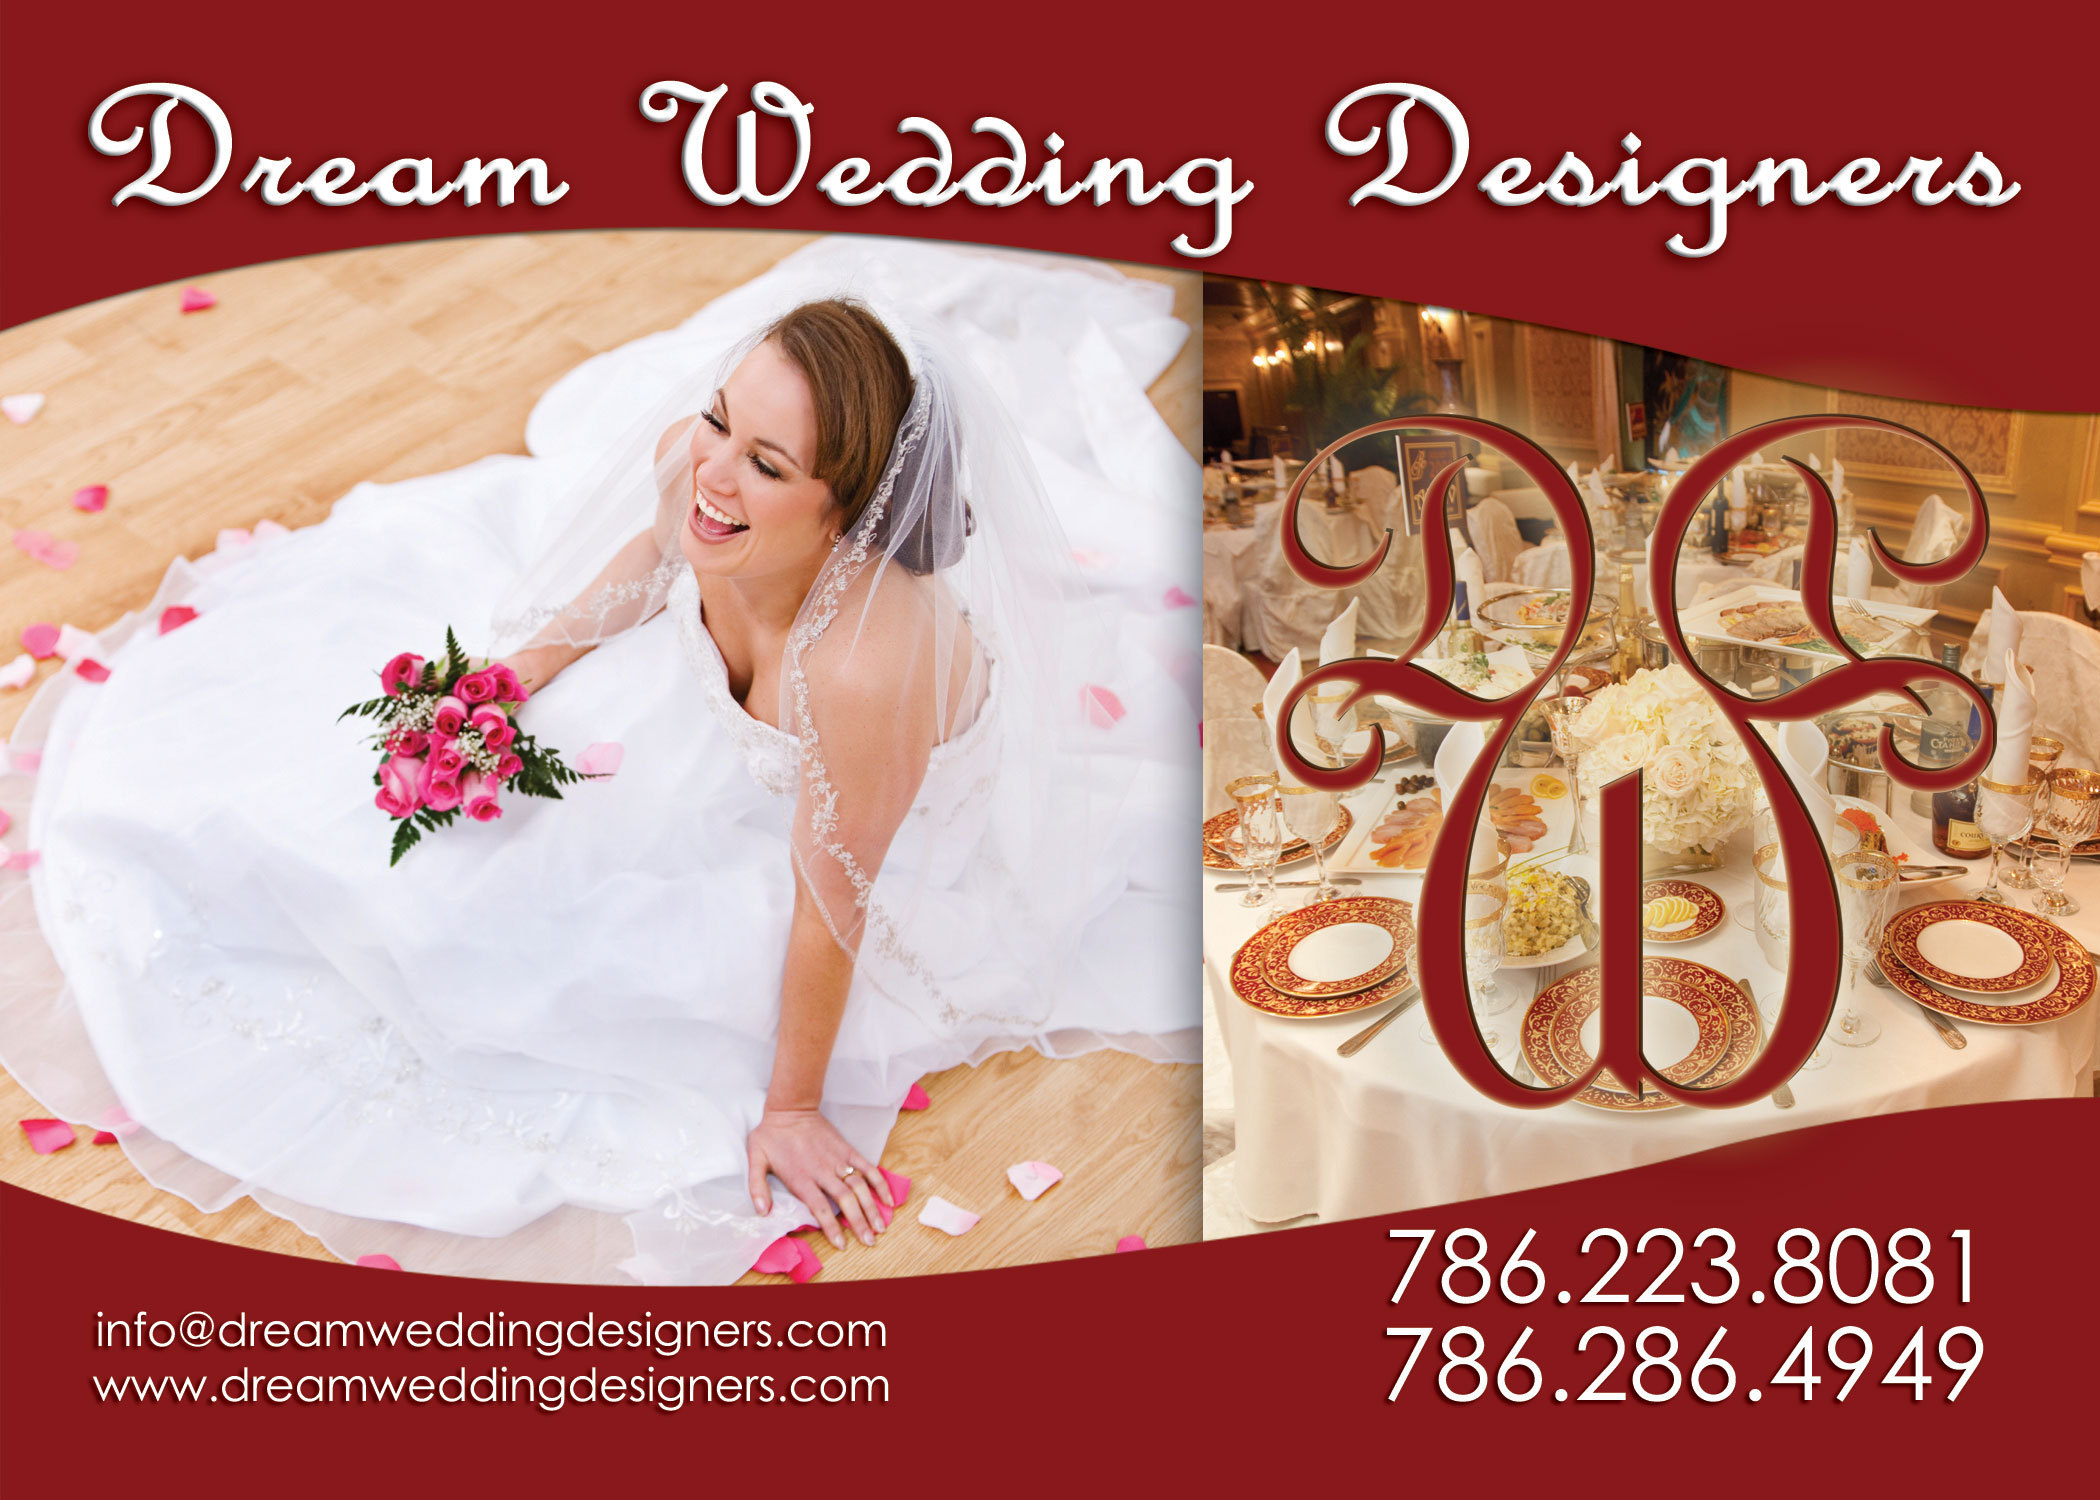 Planning, Destinations, North America, Of, In, Full, Or, South, Miami, Coordination, Dream wedding designers in south florida, Floridaday, Miamifull